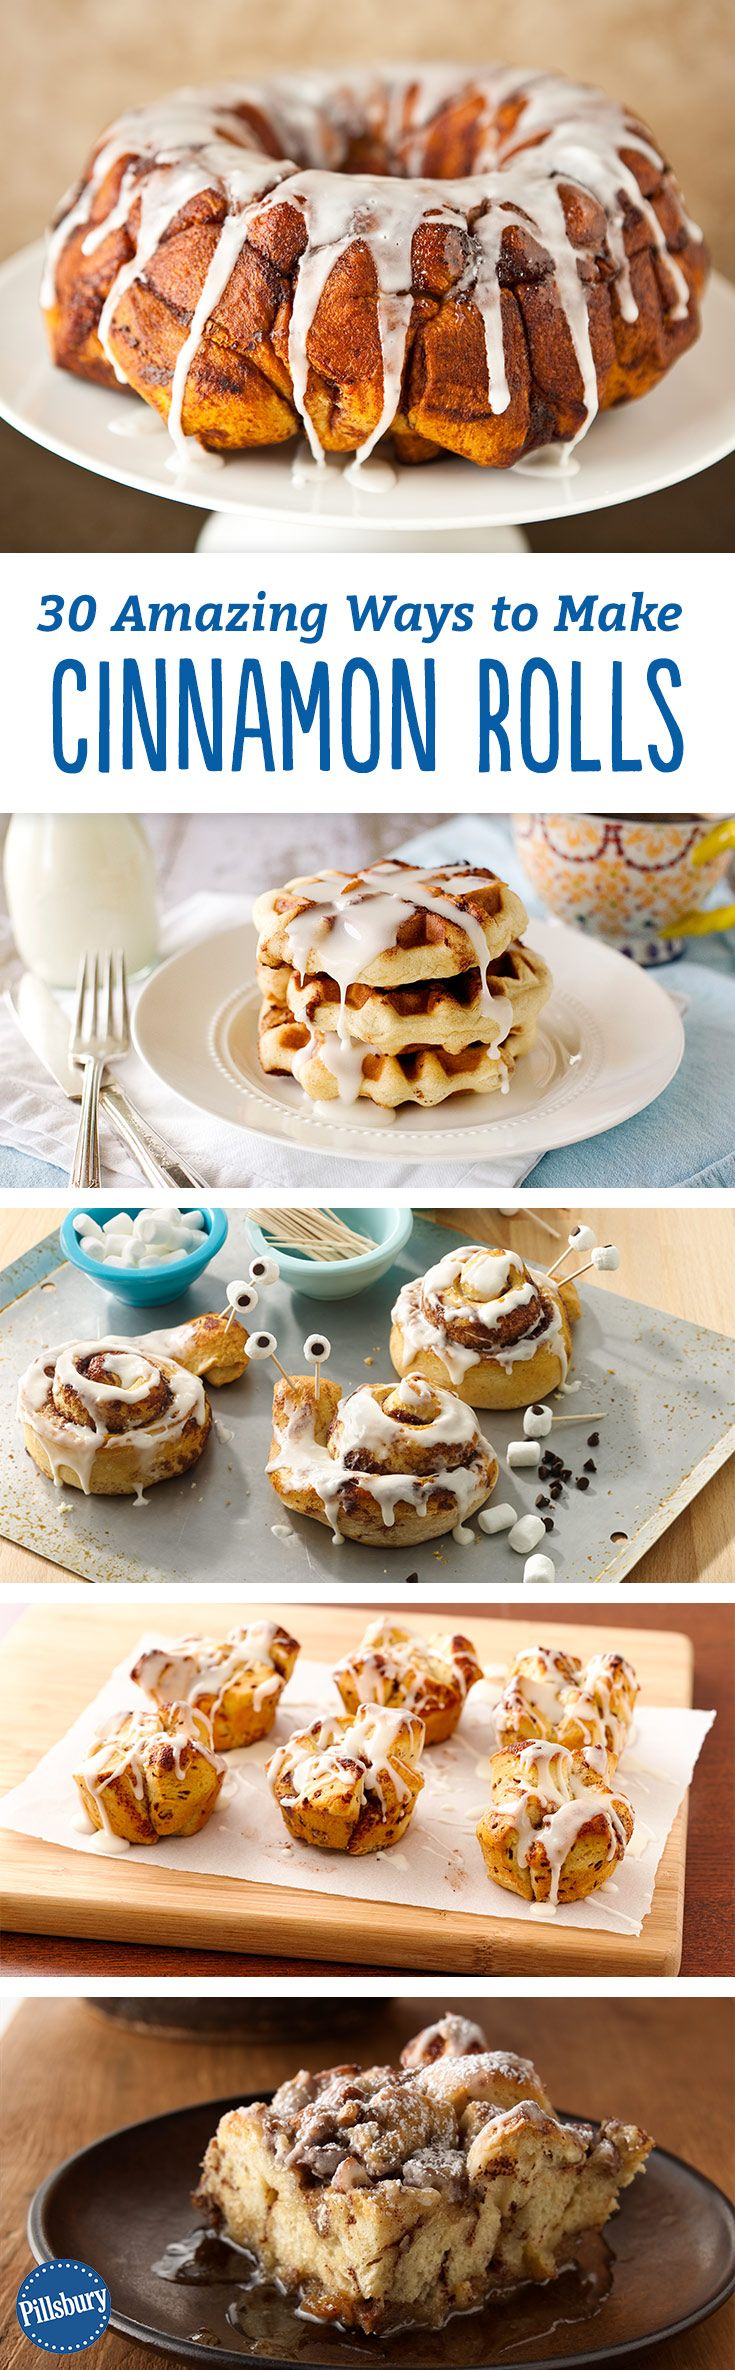 Breakfast just got 30 times better! Pillsbury Cinnamon Rolls are the best thing to happen to mornings since coffee. And we have 30 amazing recipes you must try. Did we mention we like cinnamon rolls?! Serve them for family for a weekend breakfast or frien (Best Cake For Men)